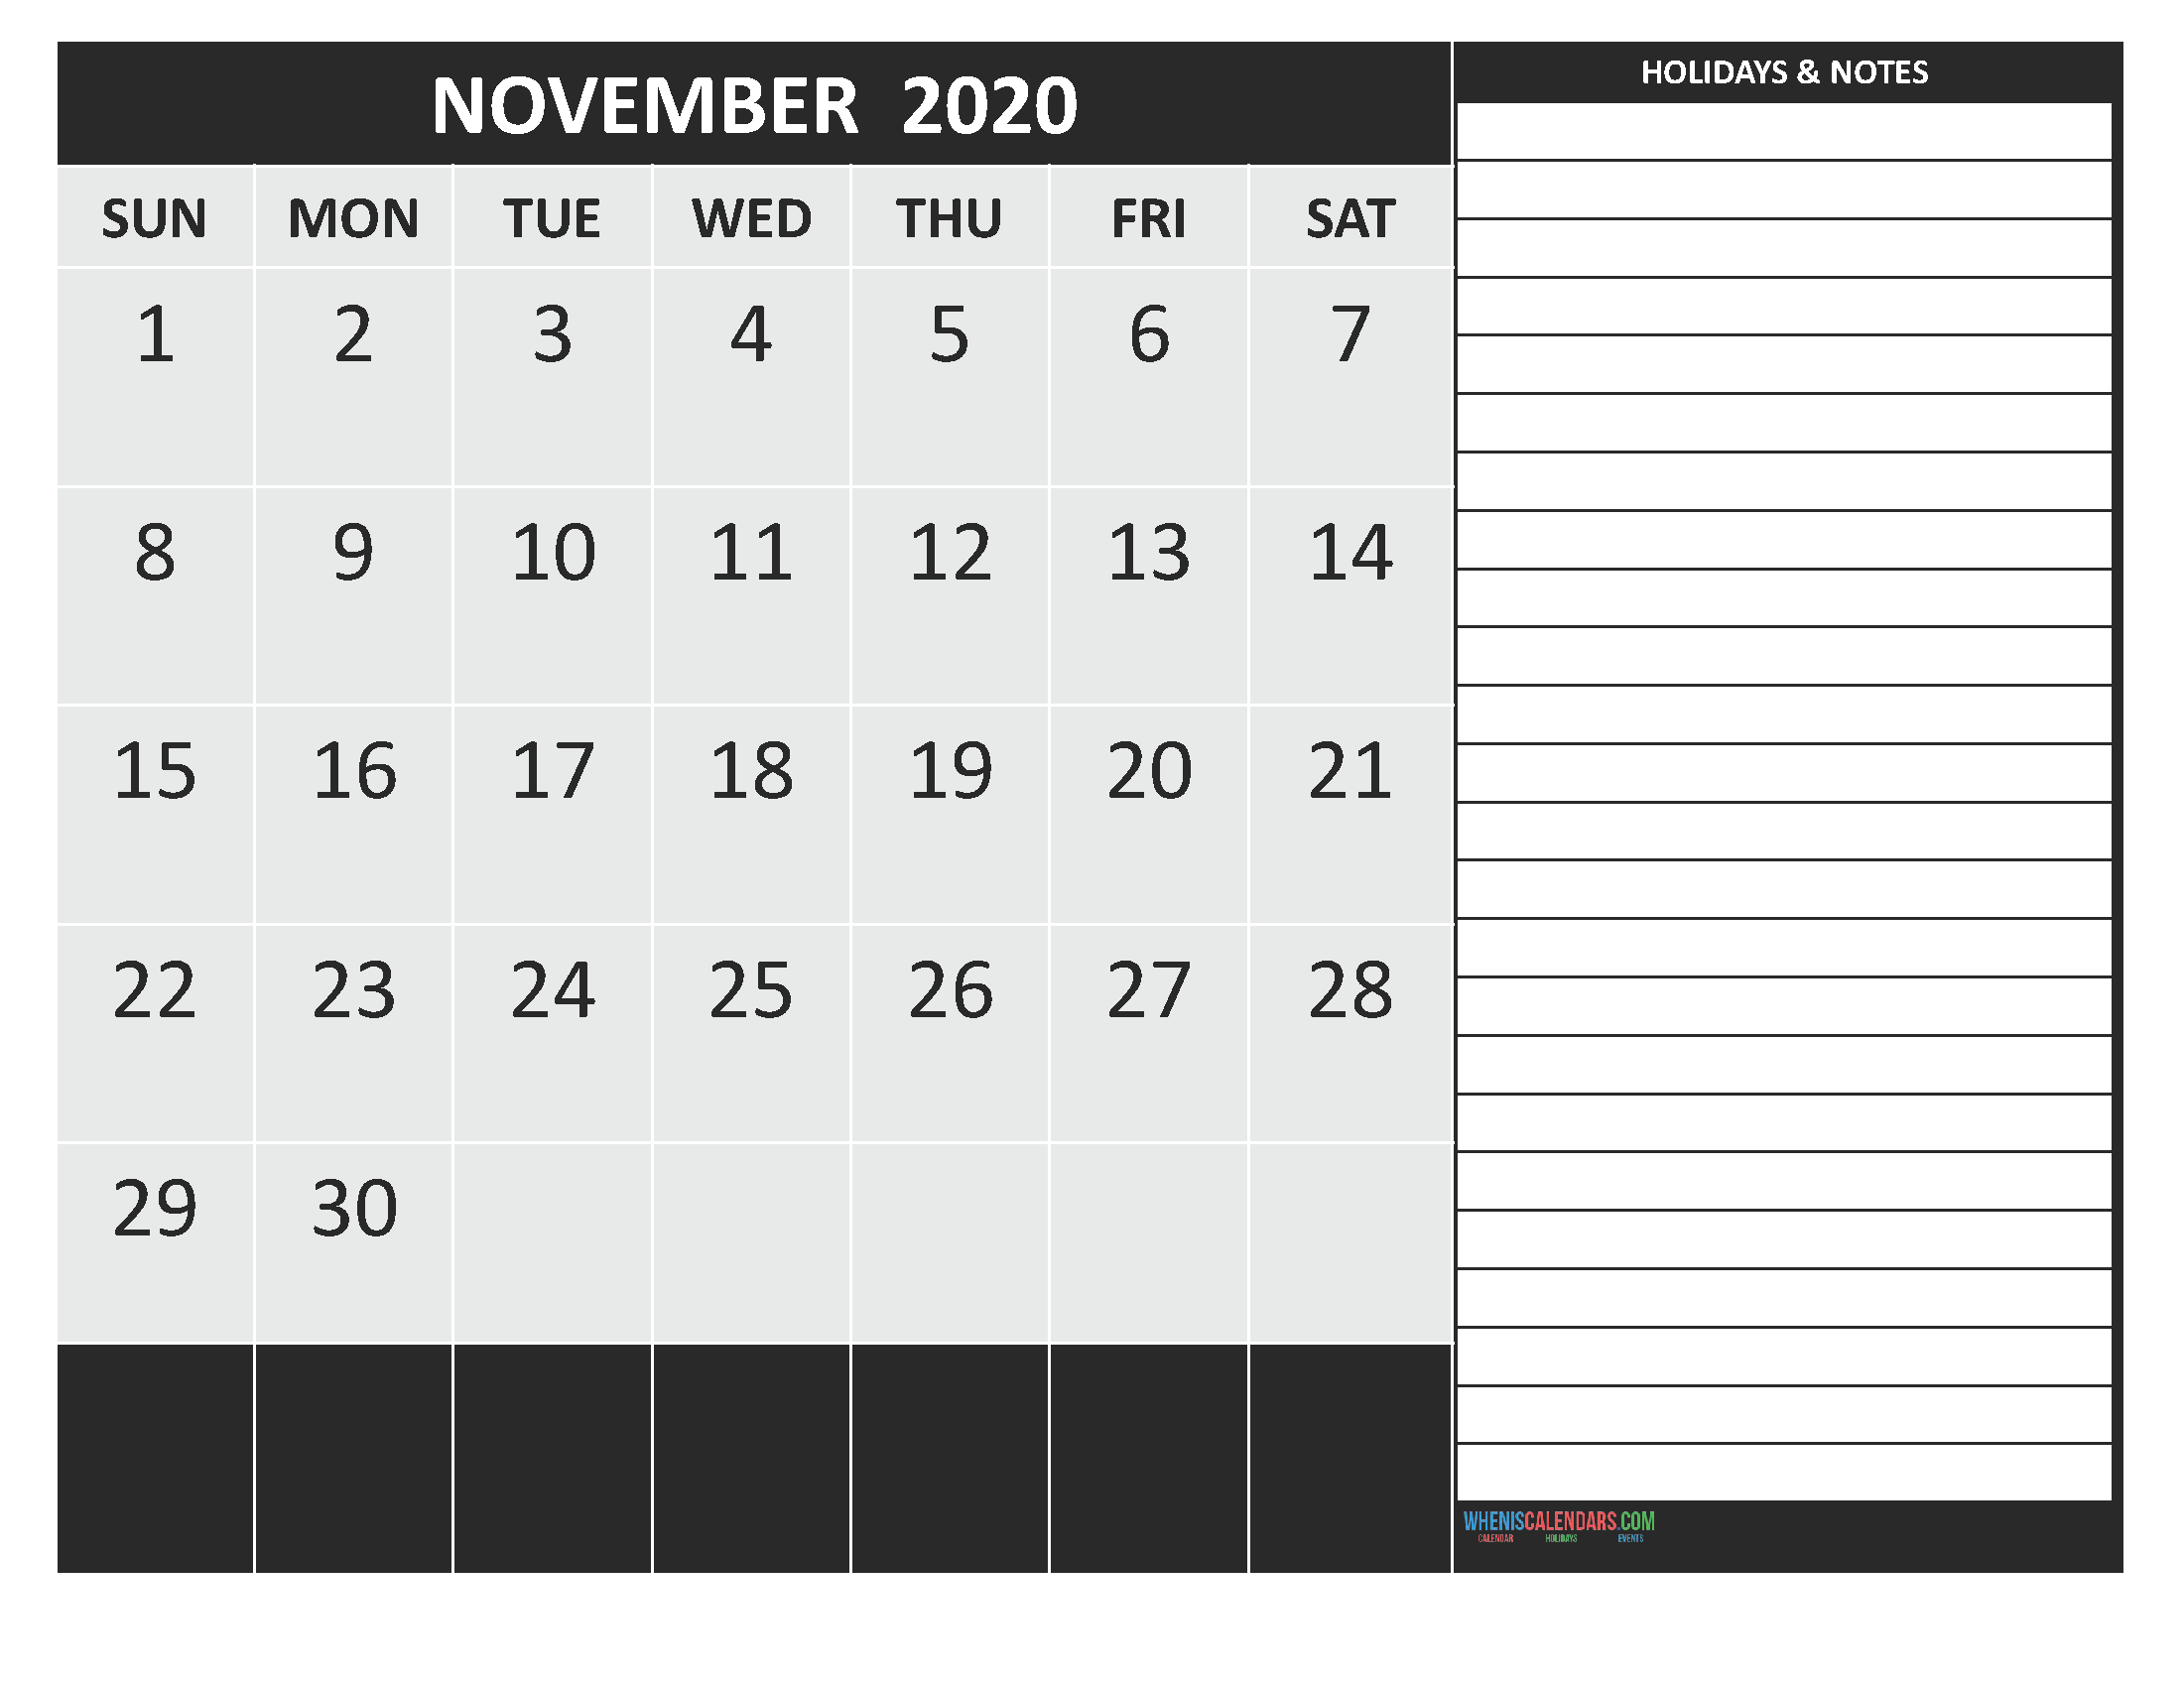 November 2020 Calendar with Holidays Free Printable